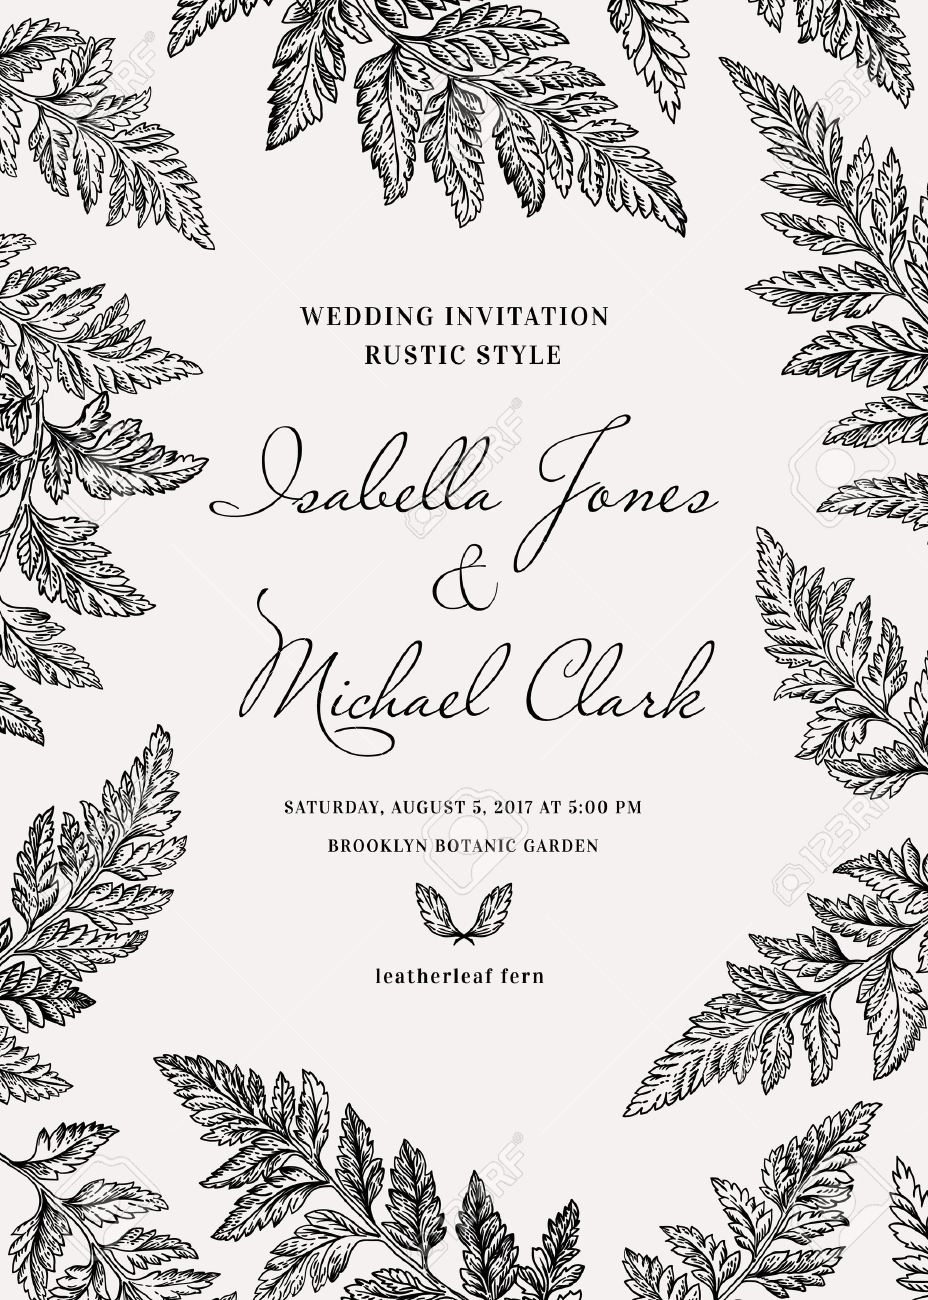 Vintage wedding invitation in a rustic style leatherleaf fern vector vintage wedding invitation in a rustic style leatherleaf fern botanical vector illustration black and white stopboris Image collections